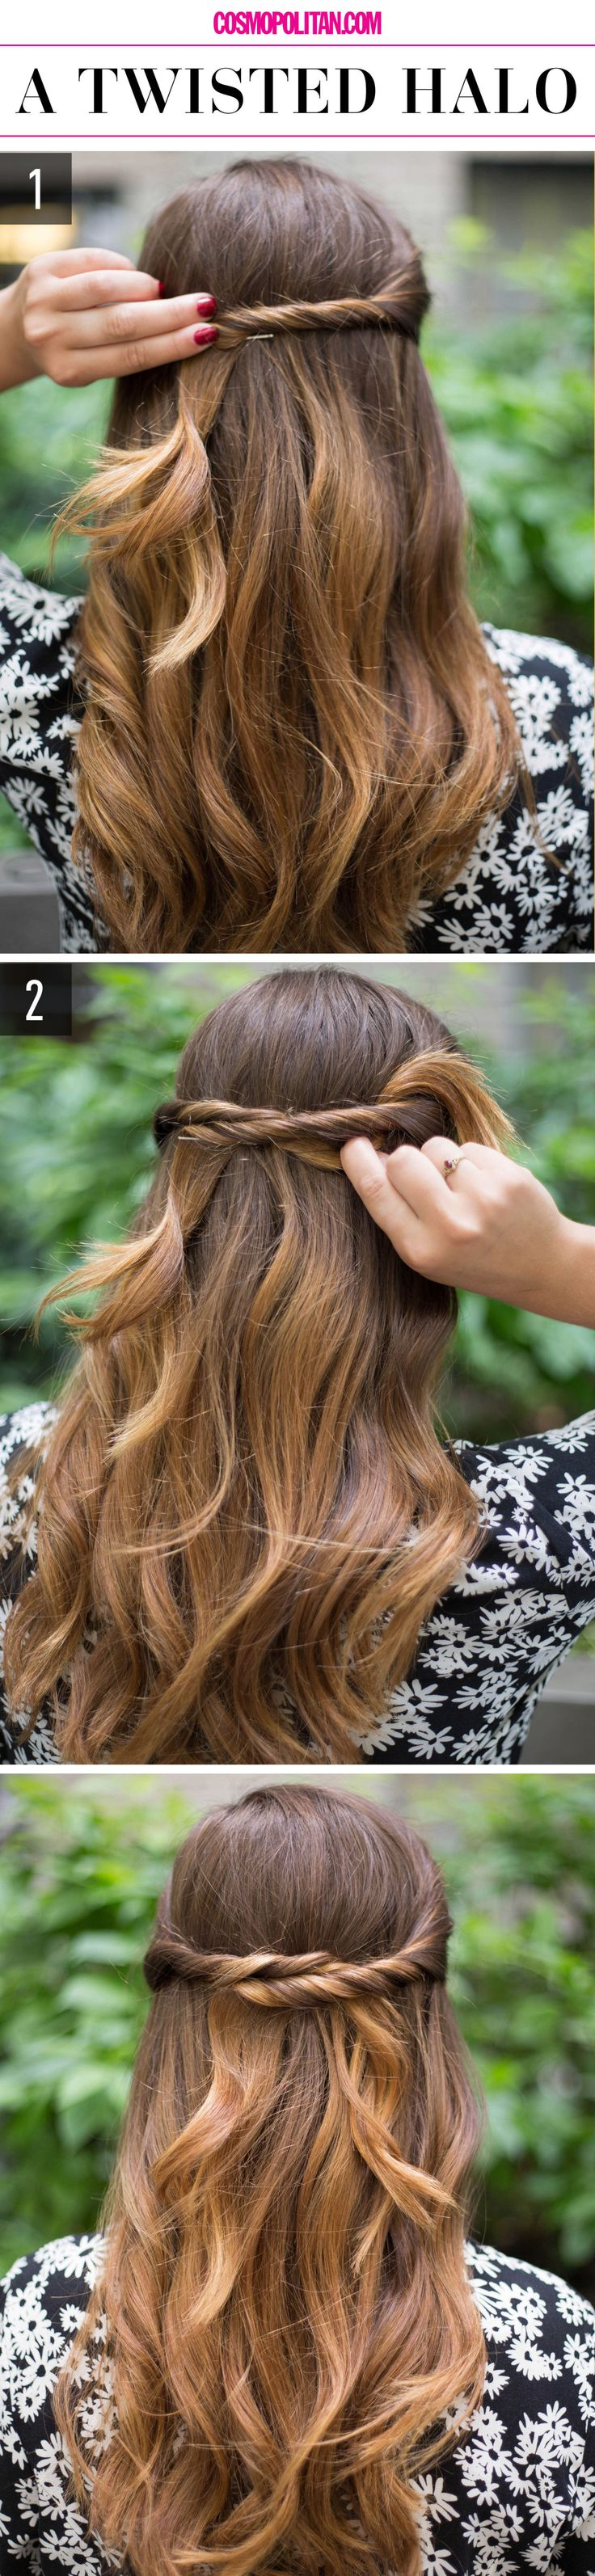 best style images on pinterest cute hairstyles hairstyle ideas